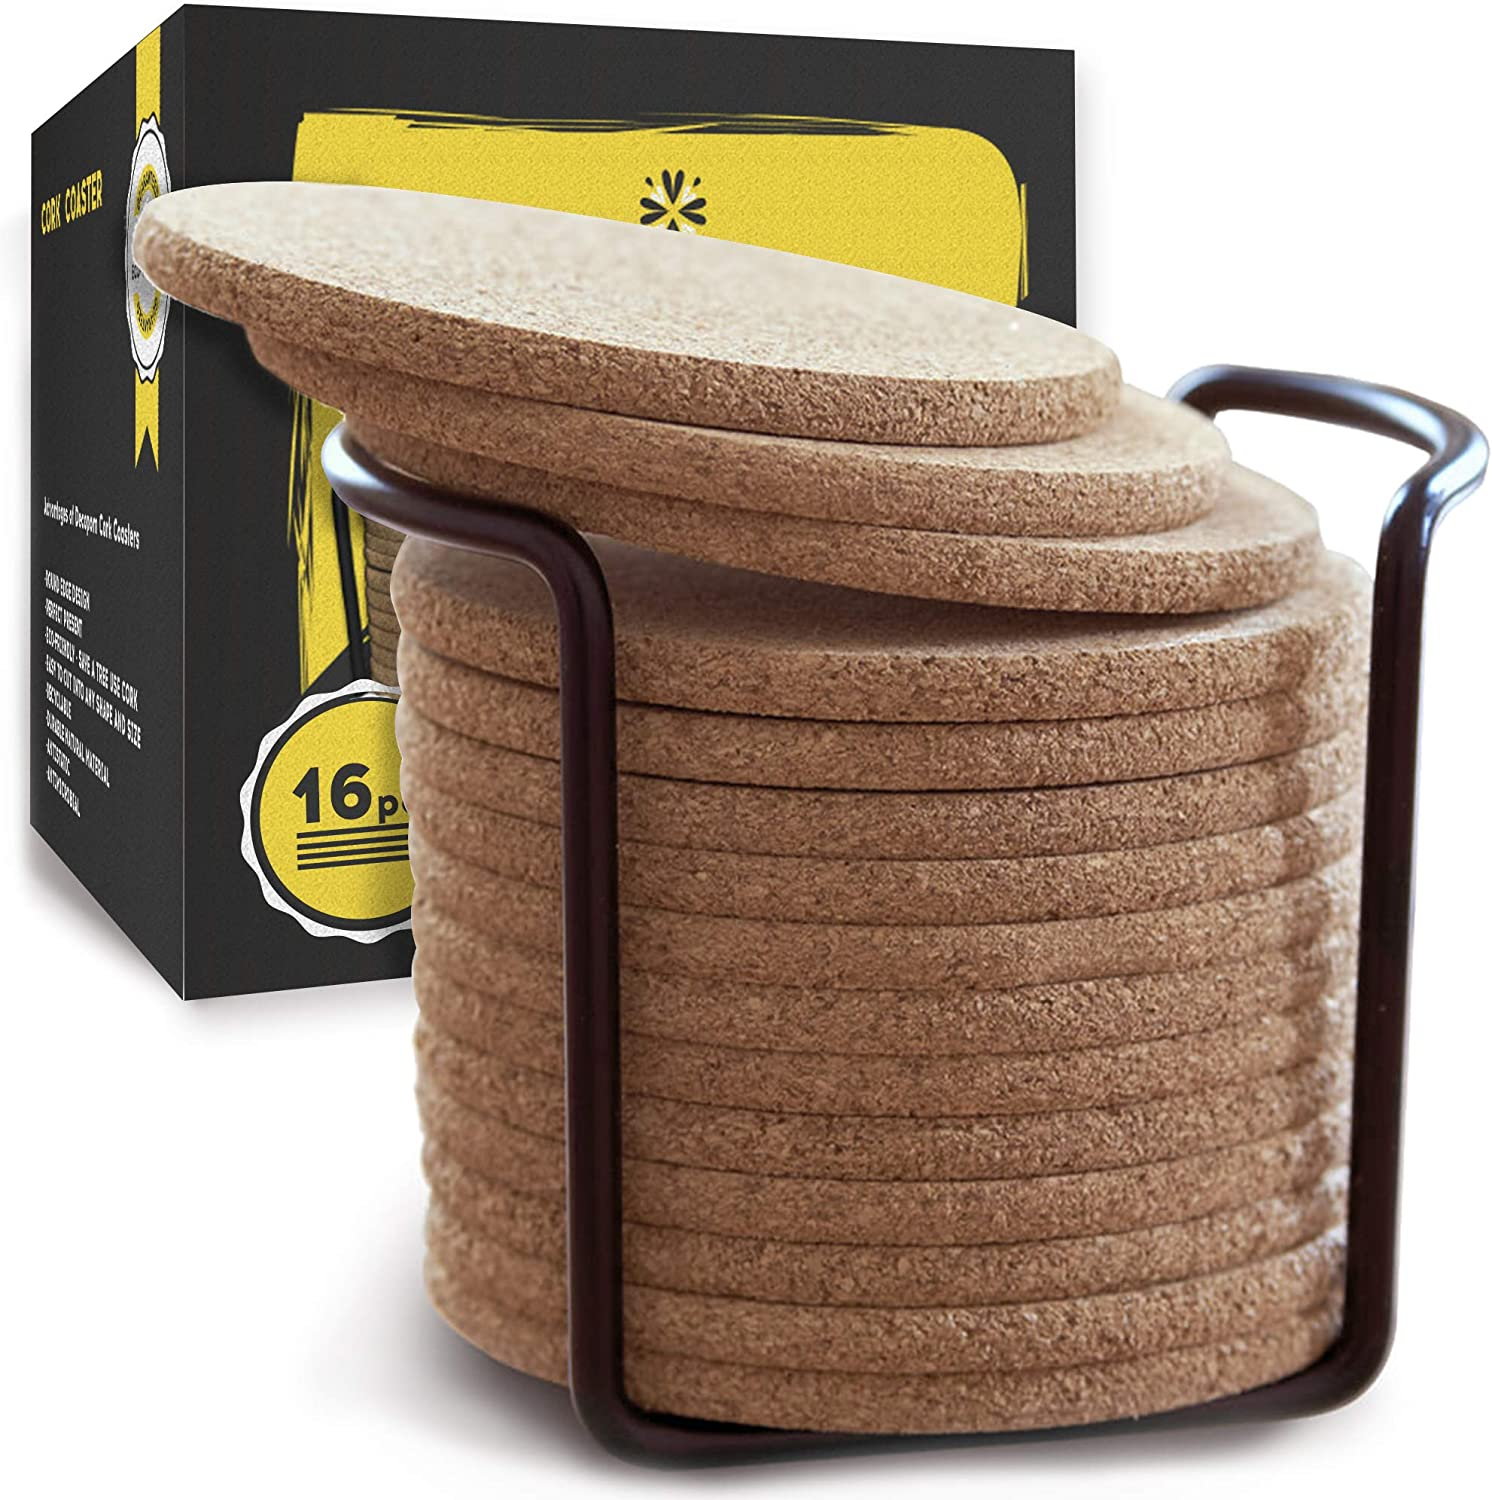 Cork Coasters with Round Edge 4 inches 16pc Set with Metal Holder Storage Caddy – Thick Plain Absorbent Heat-Resistant Reusable Saucers for Cold Drinks Wine Glasses Plants Cups & Mugs